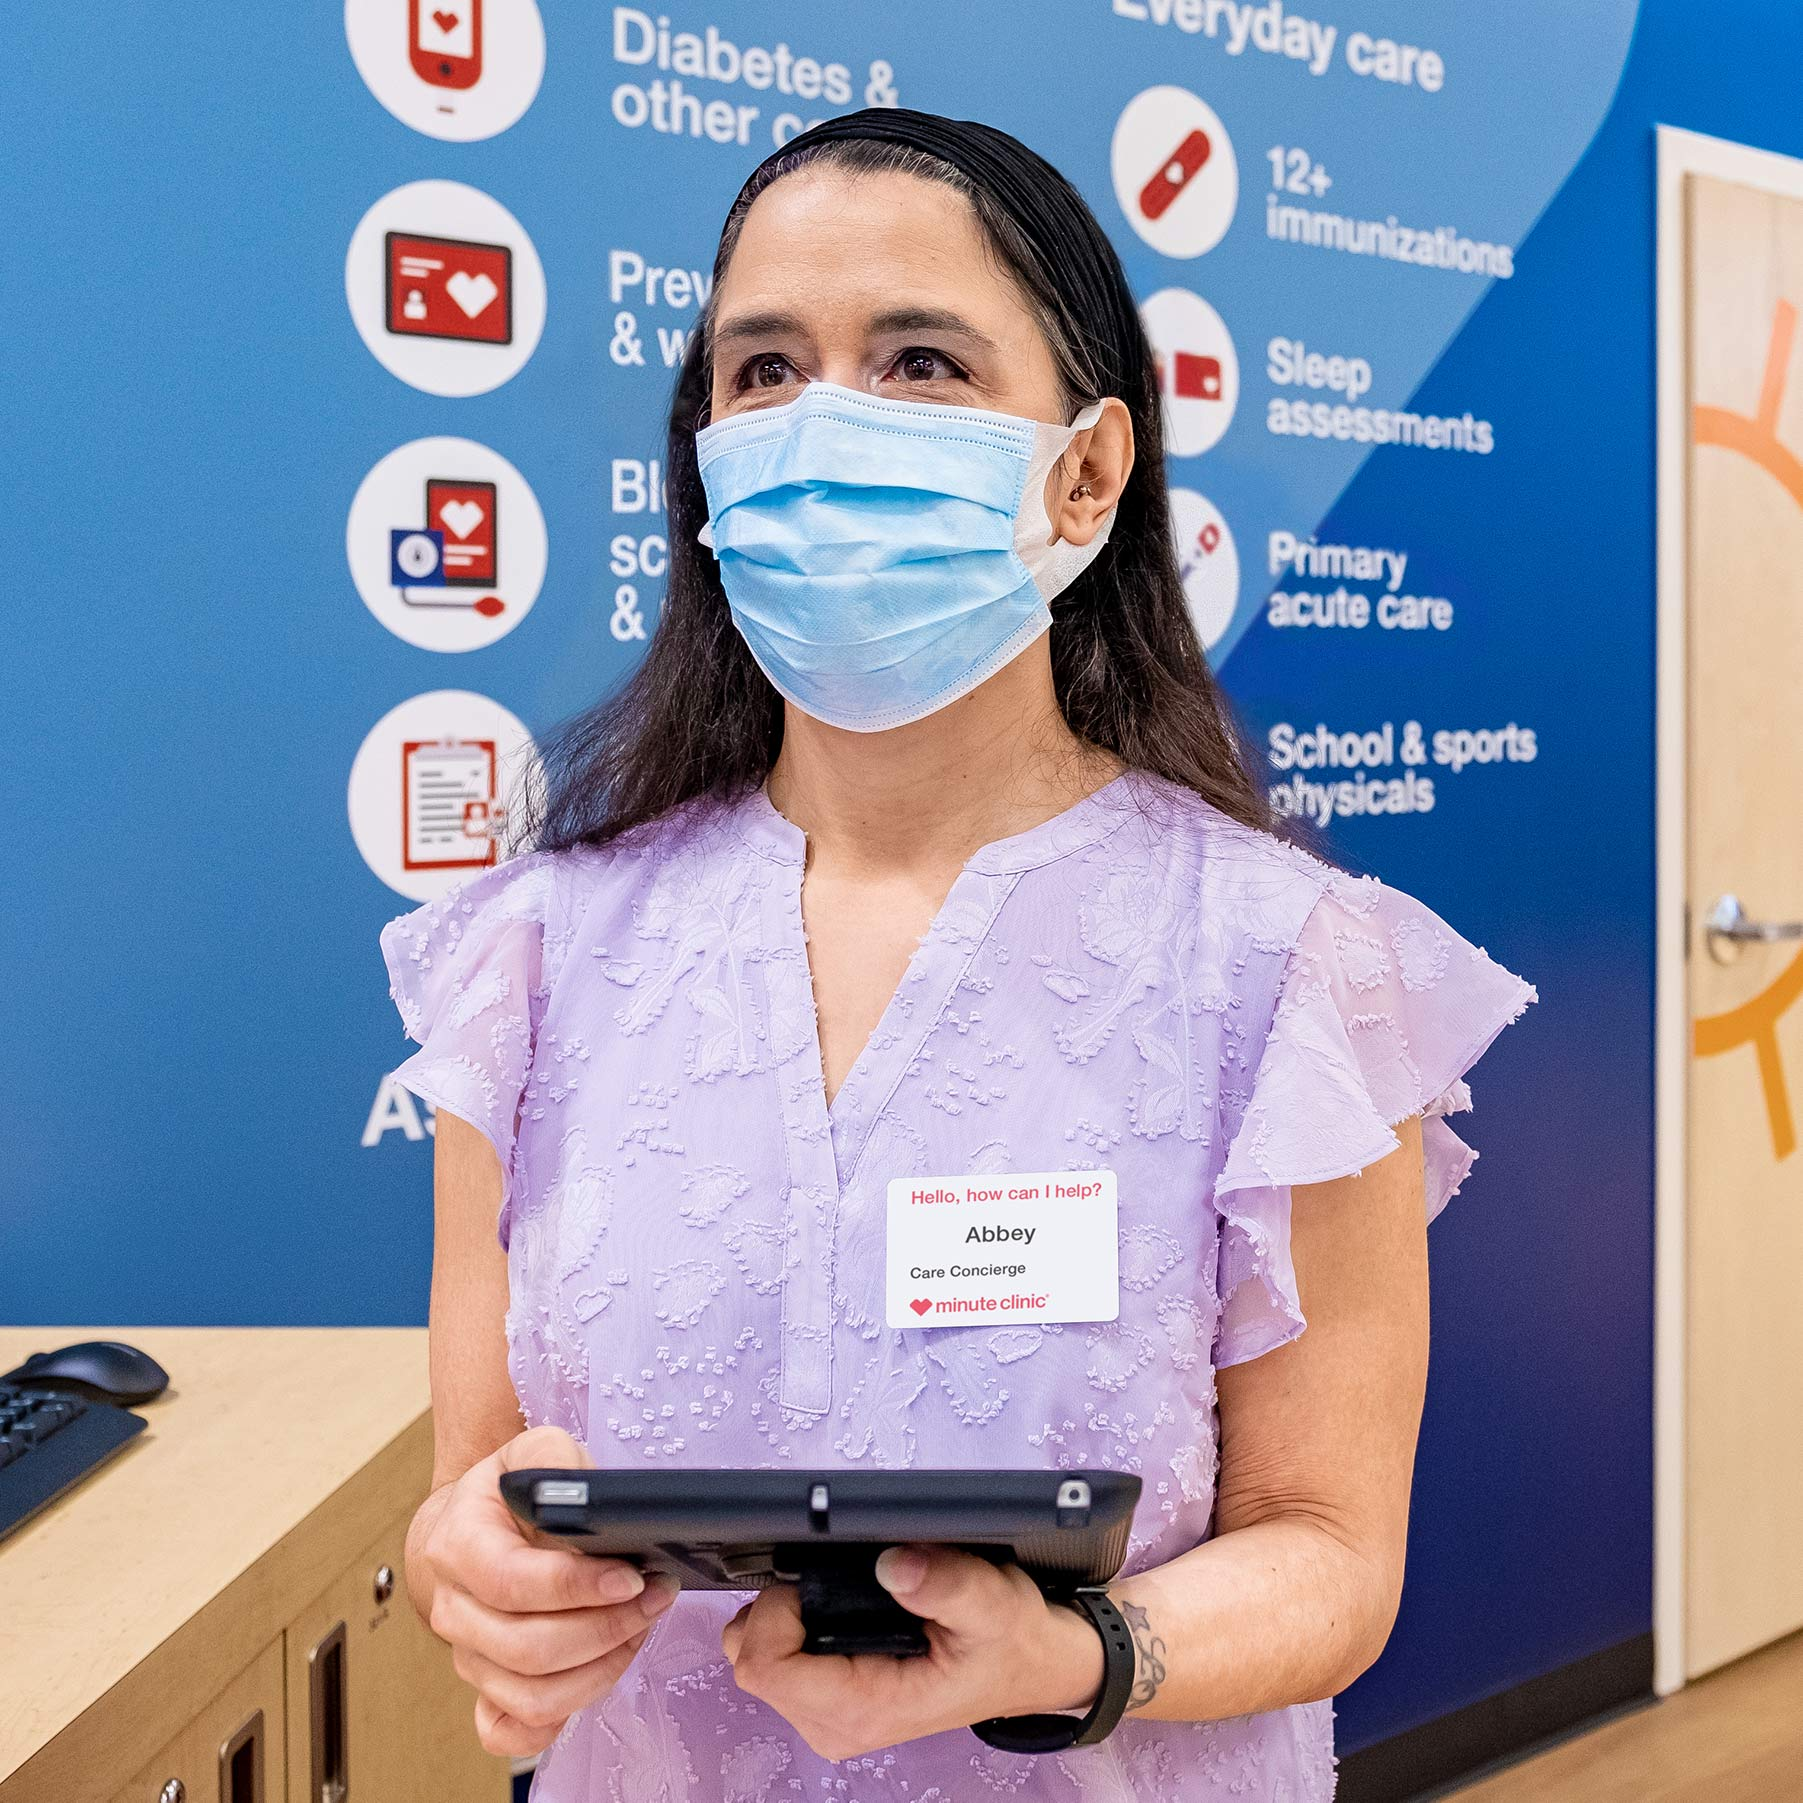 A HealthHUB concierge seen at a CVS Pharmacy location, wearing a face mask and using a tablet computer.